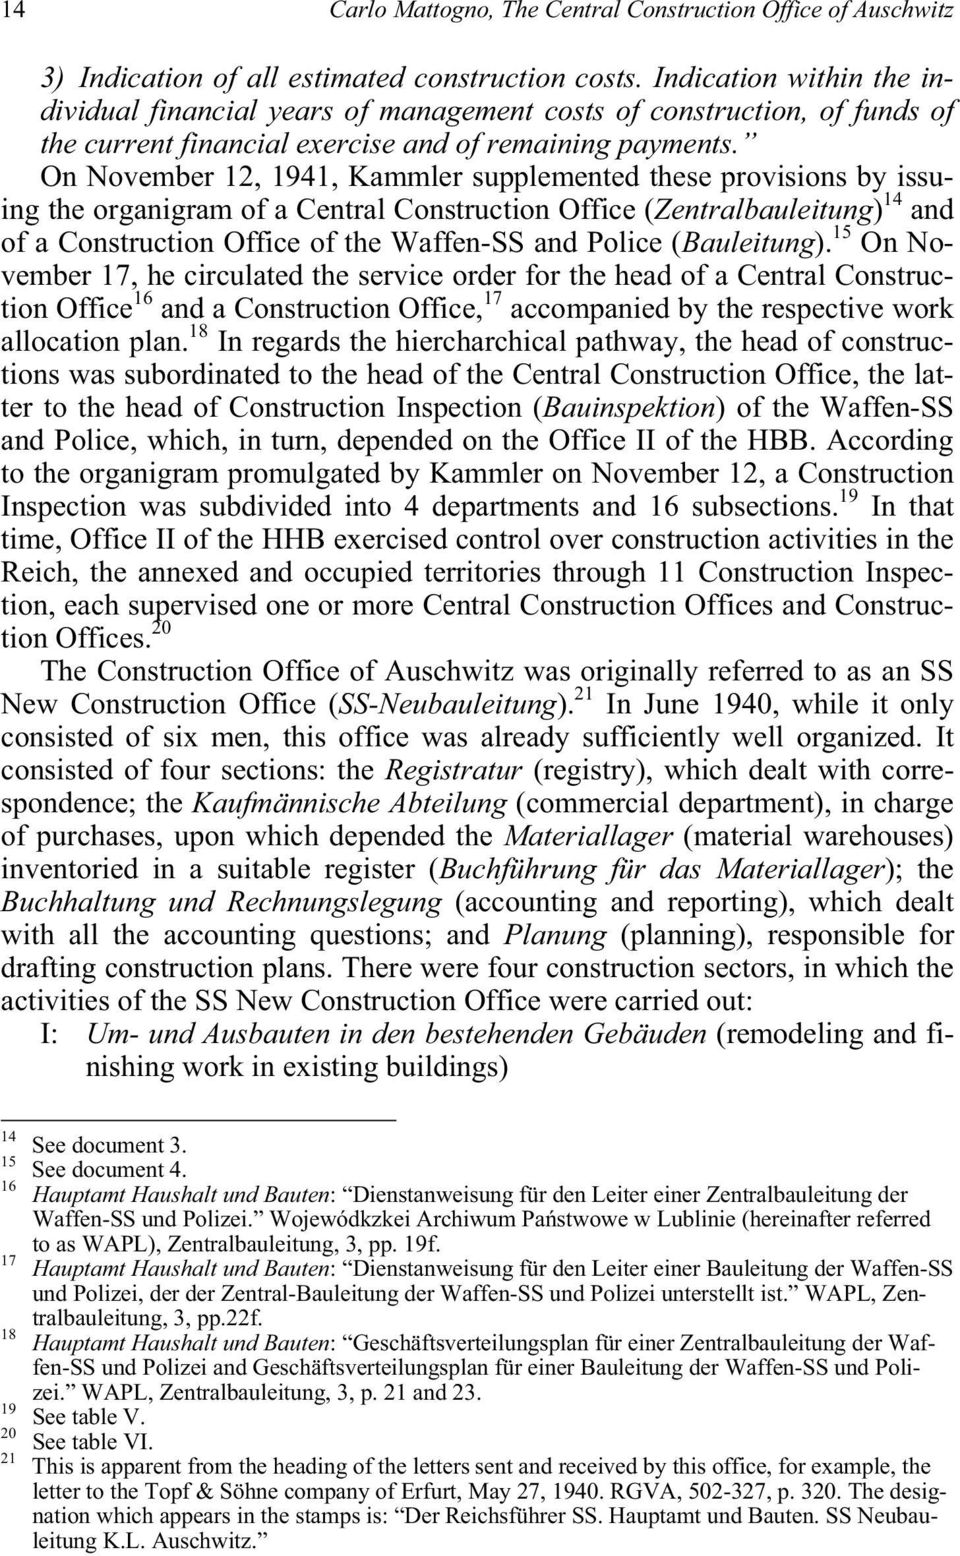 On November 12, 1941, Kammler supplemented these provisions by issuing the organigram of a Central Construction Office (Zentralbauleitung) 14 and of a Construction Office of the Waffen-SS and Police